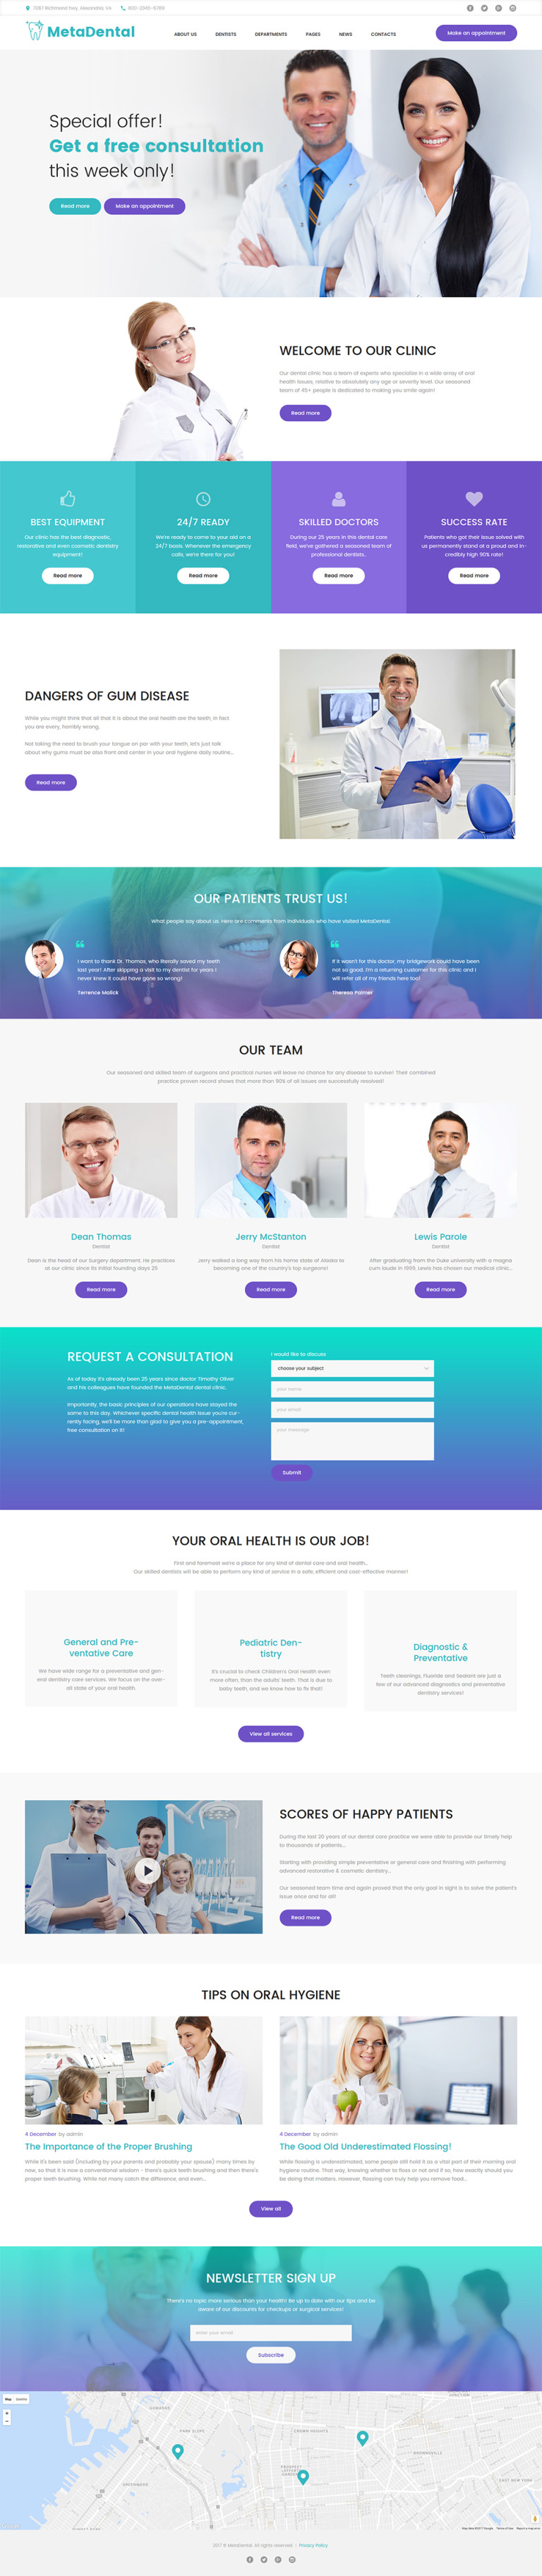 MetaDental - Private Dental Clinic Responsive WordPress Theme New Screenshots BIG